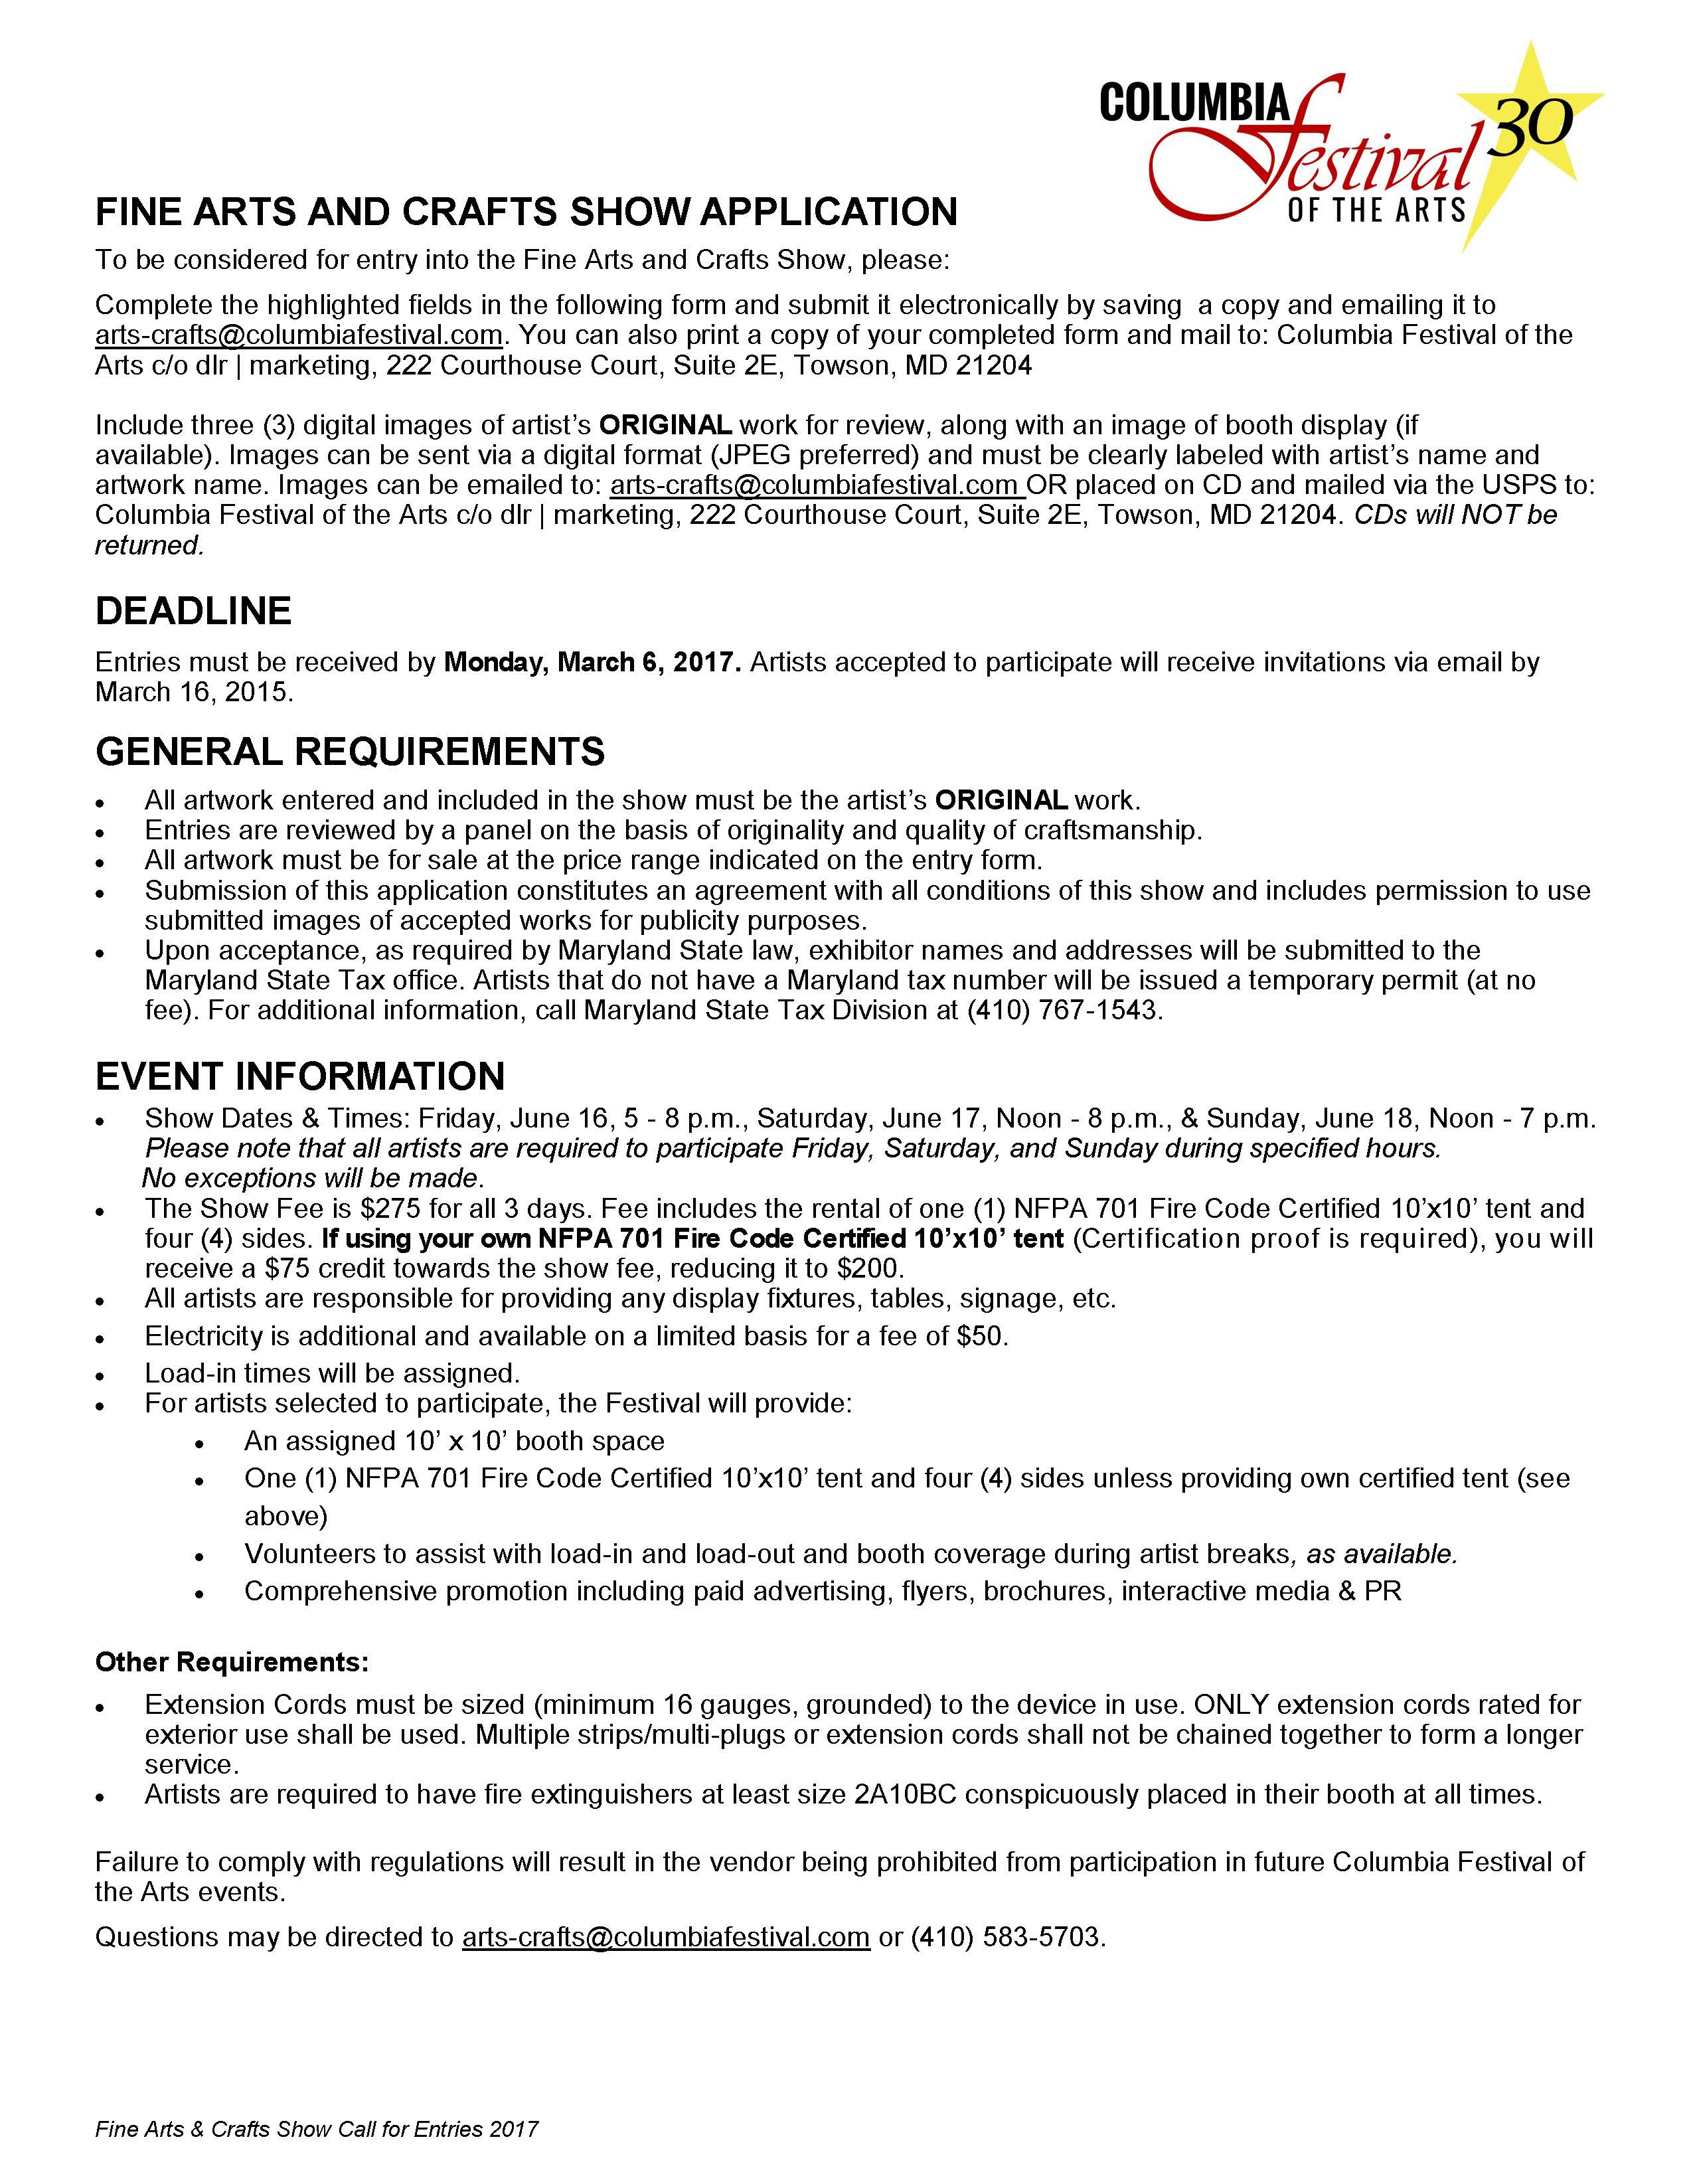 CFA_Call for Entries_2017_Page_2 – BALTIMORE ARTS